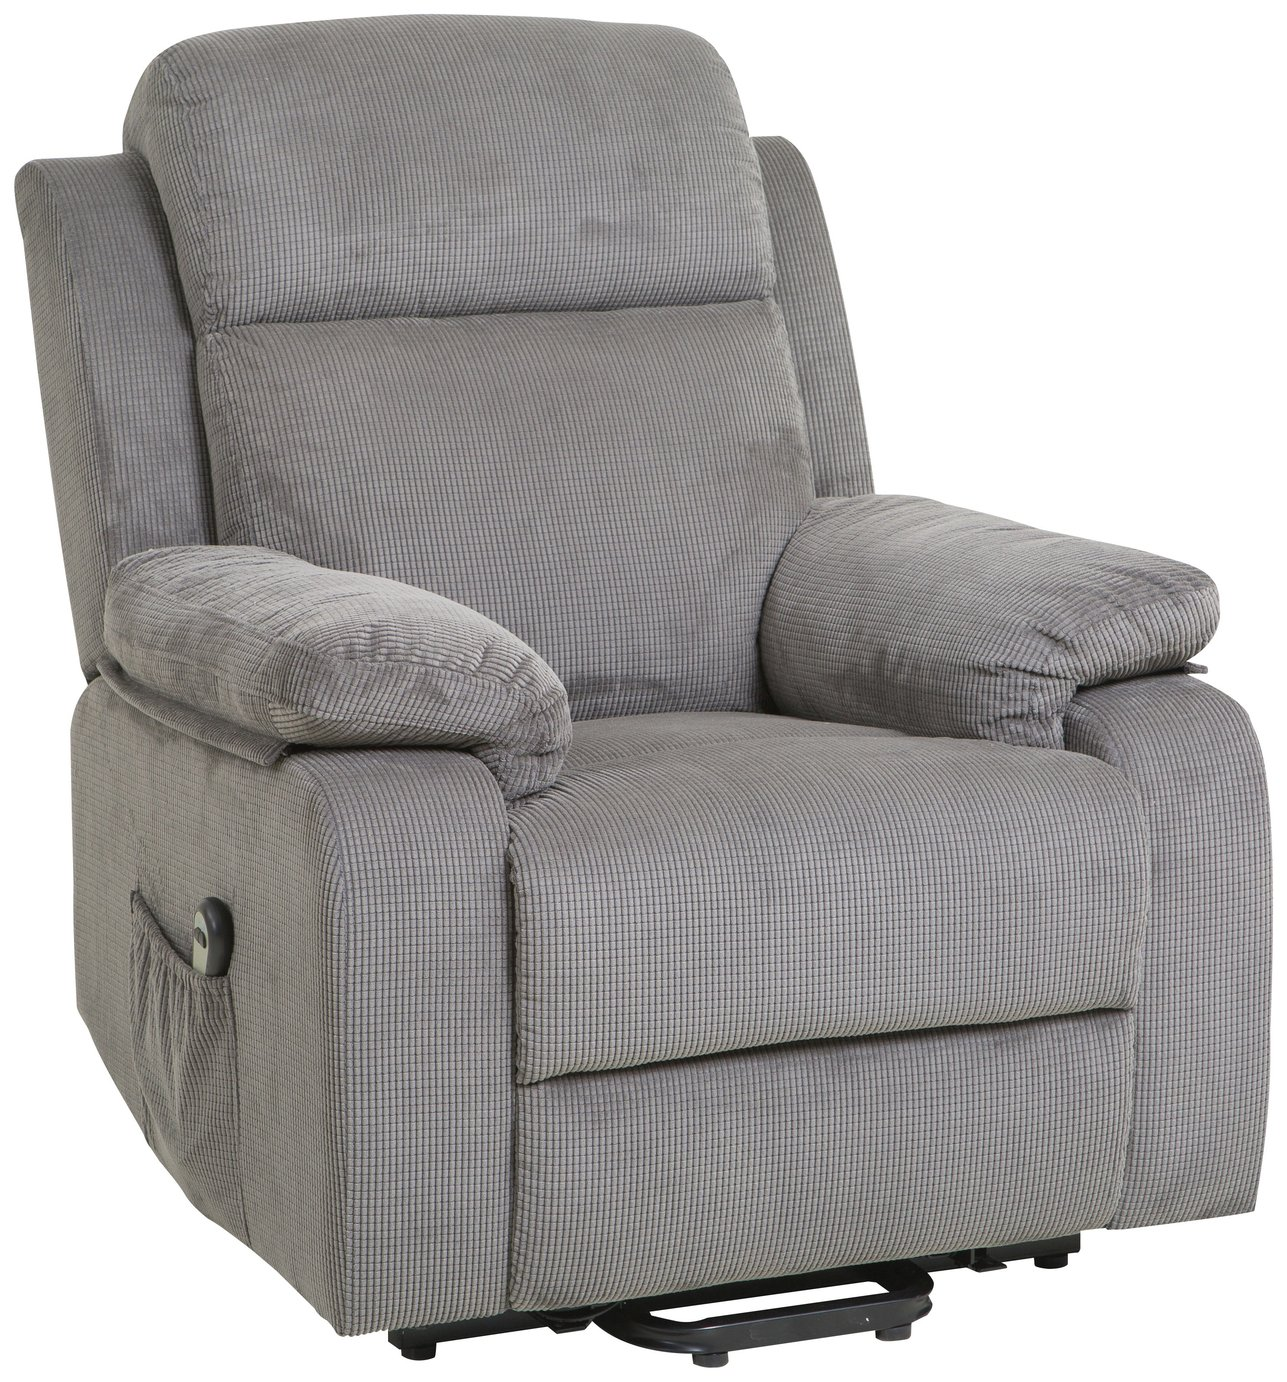 Bradley Fabric Charcoal Riser Recliner from the collection